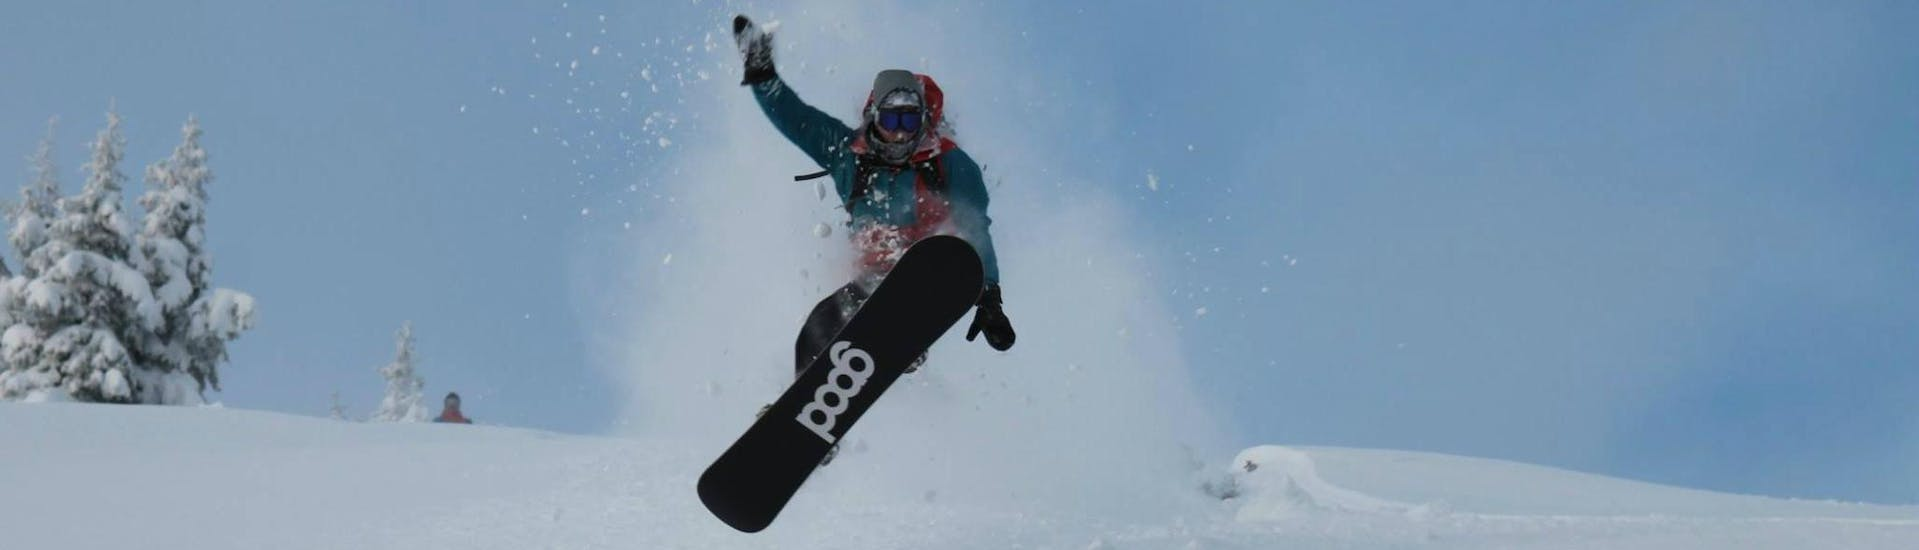 Freestyle Snowboarding Lessons for All Levels with BoardStars Snowboardschule Schladming - Hero image